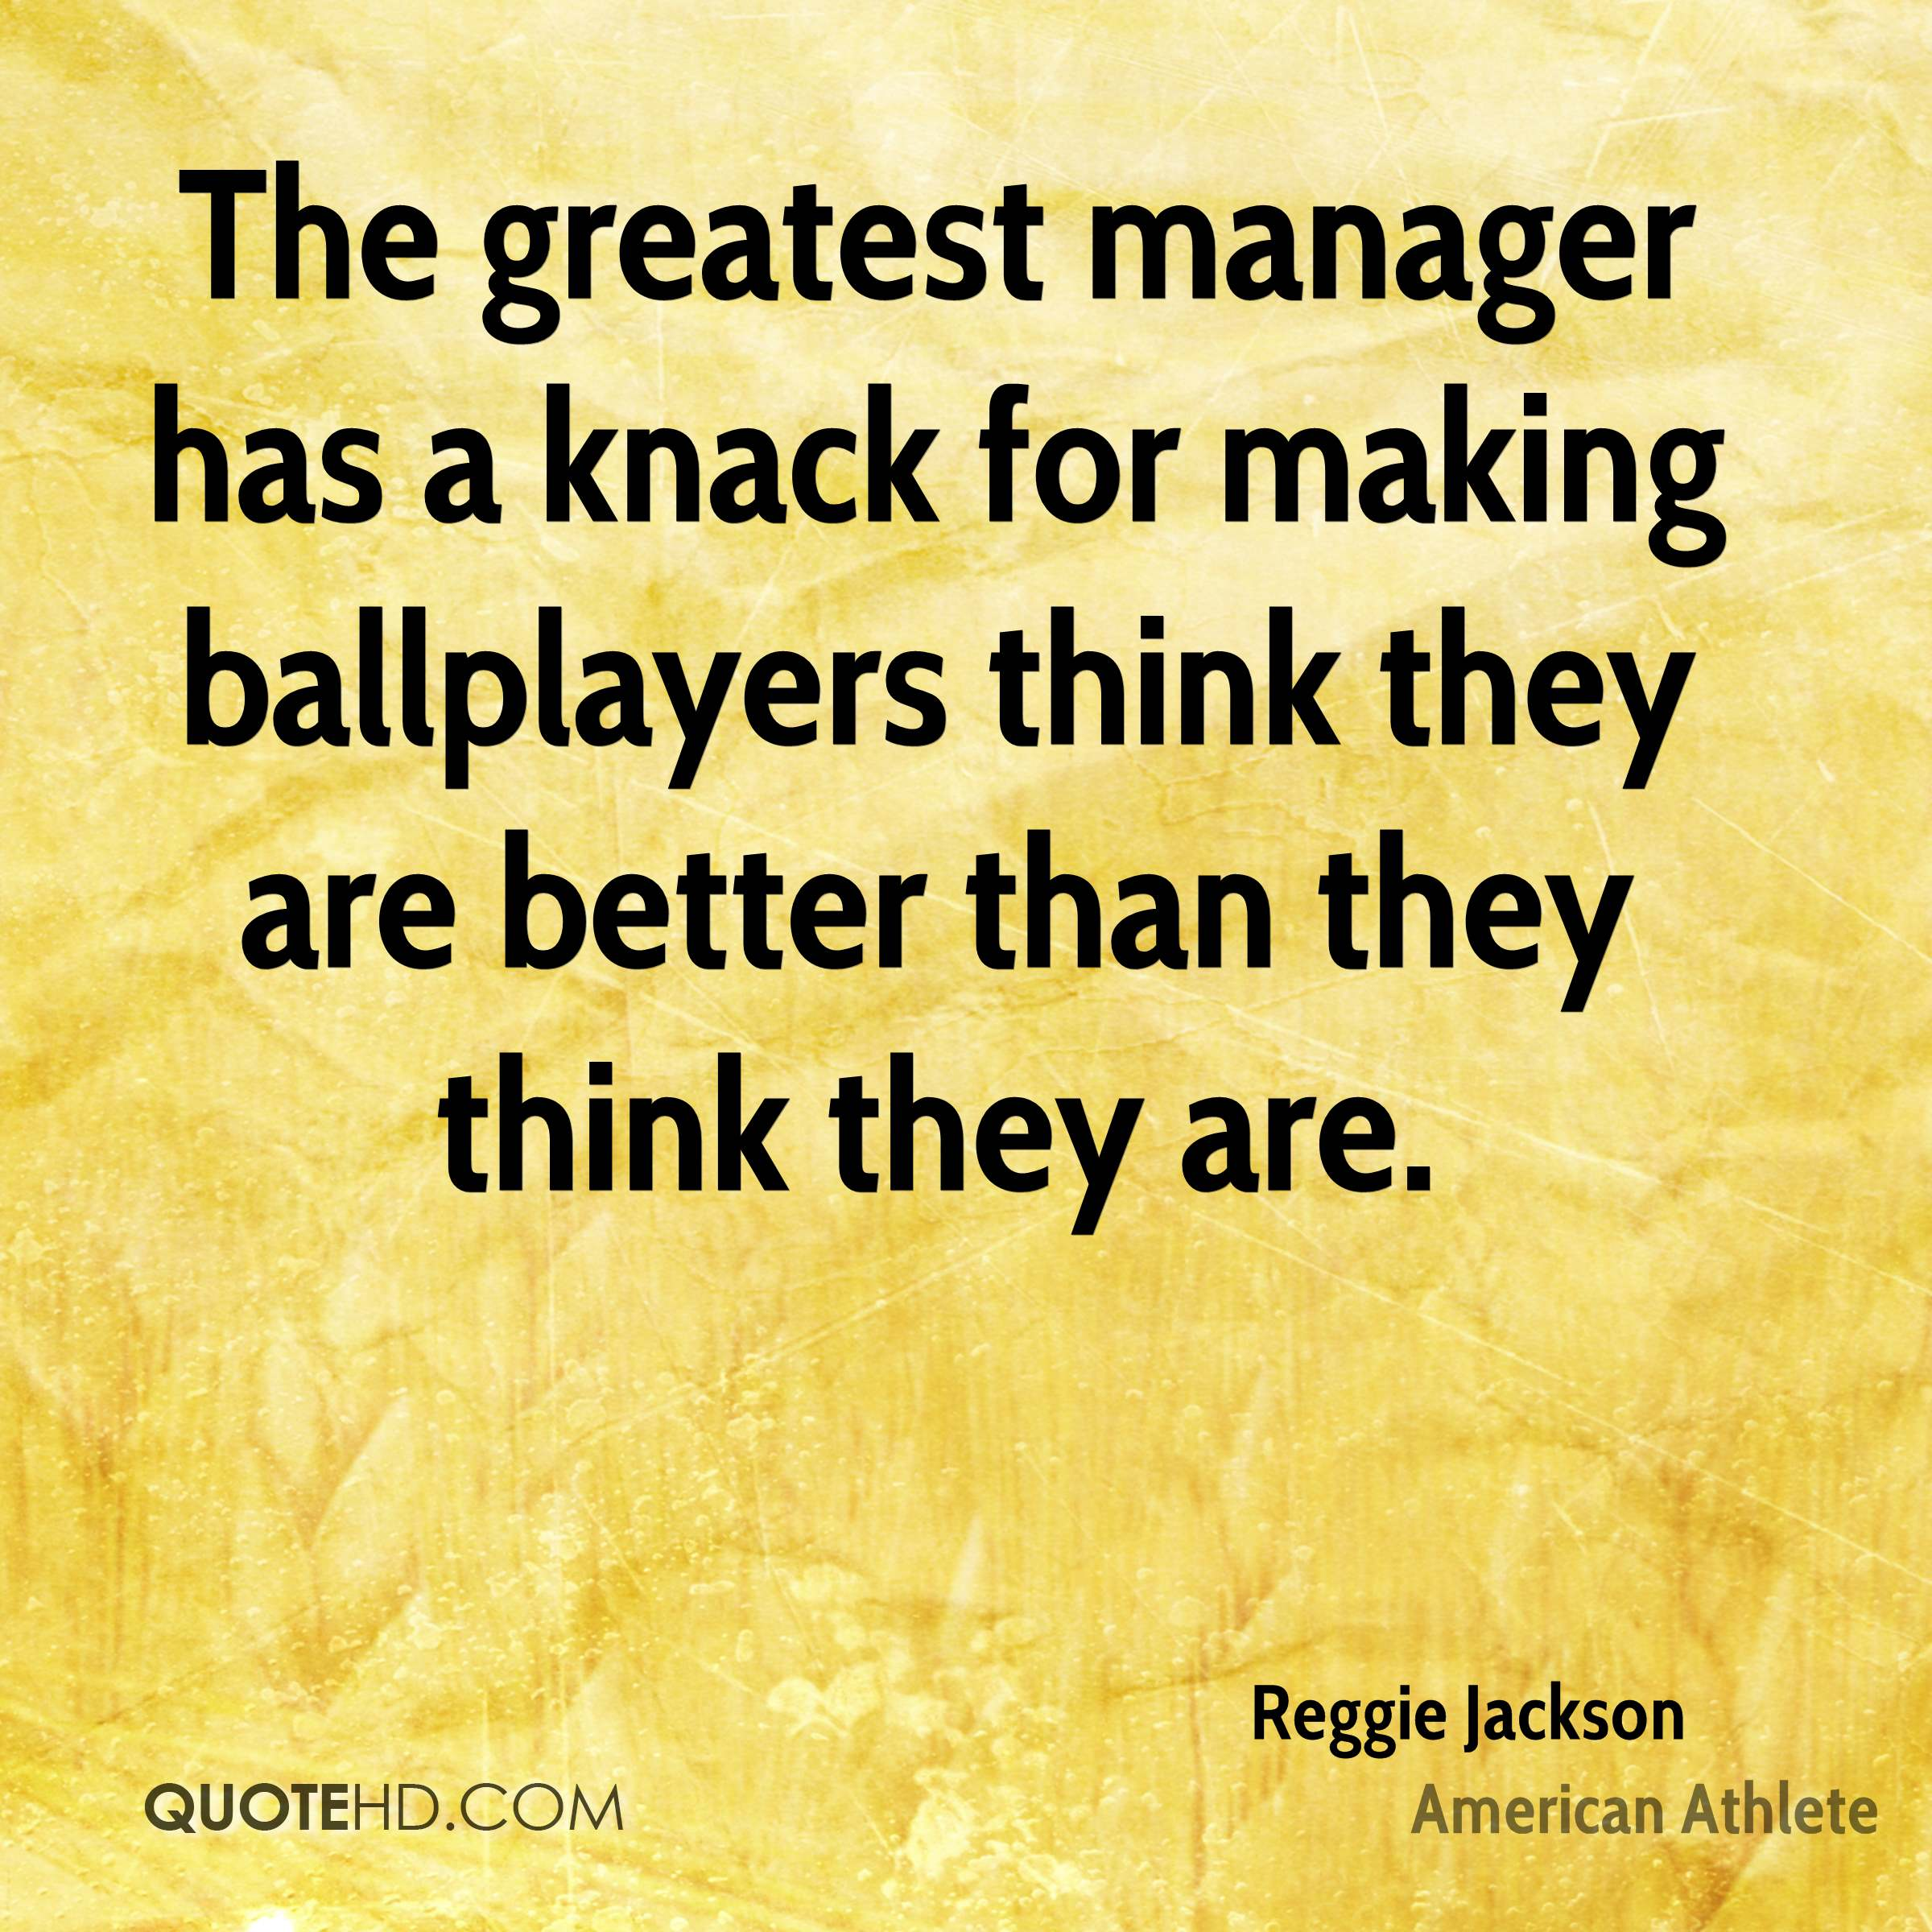 The greatest manager has a knack for making ballplayers think they are better than they think they are.